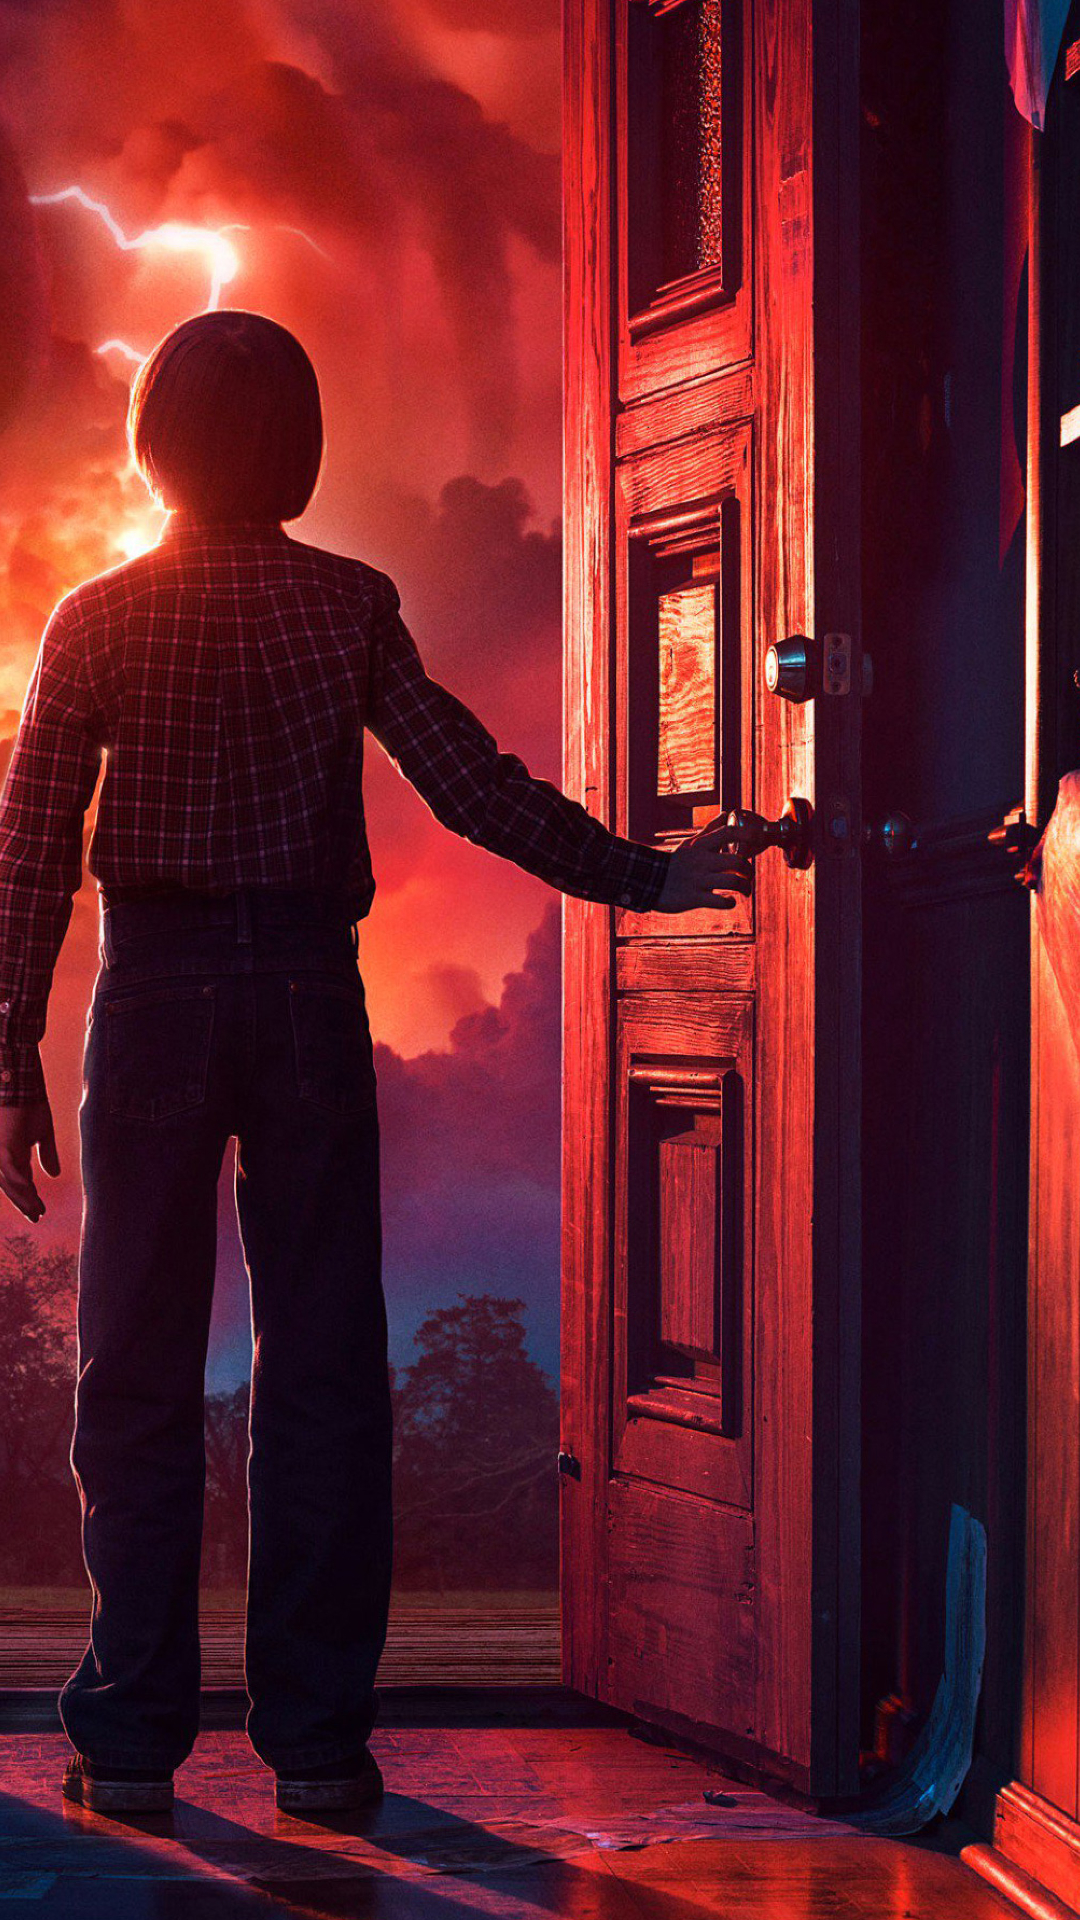 Stranger Things Season 2 2017  Full Hd 2k Wallpaper